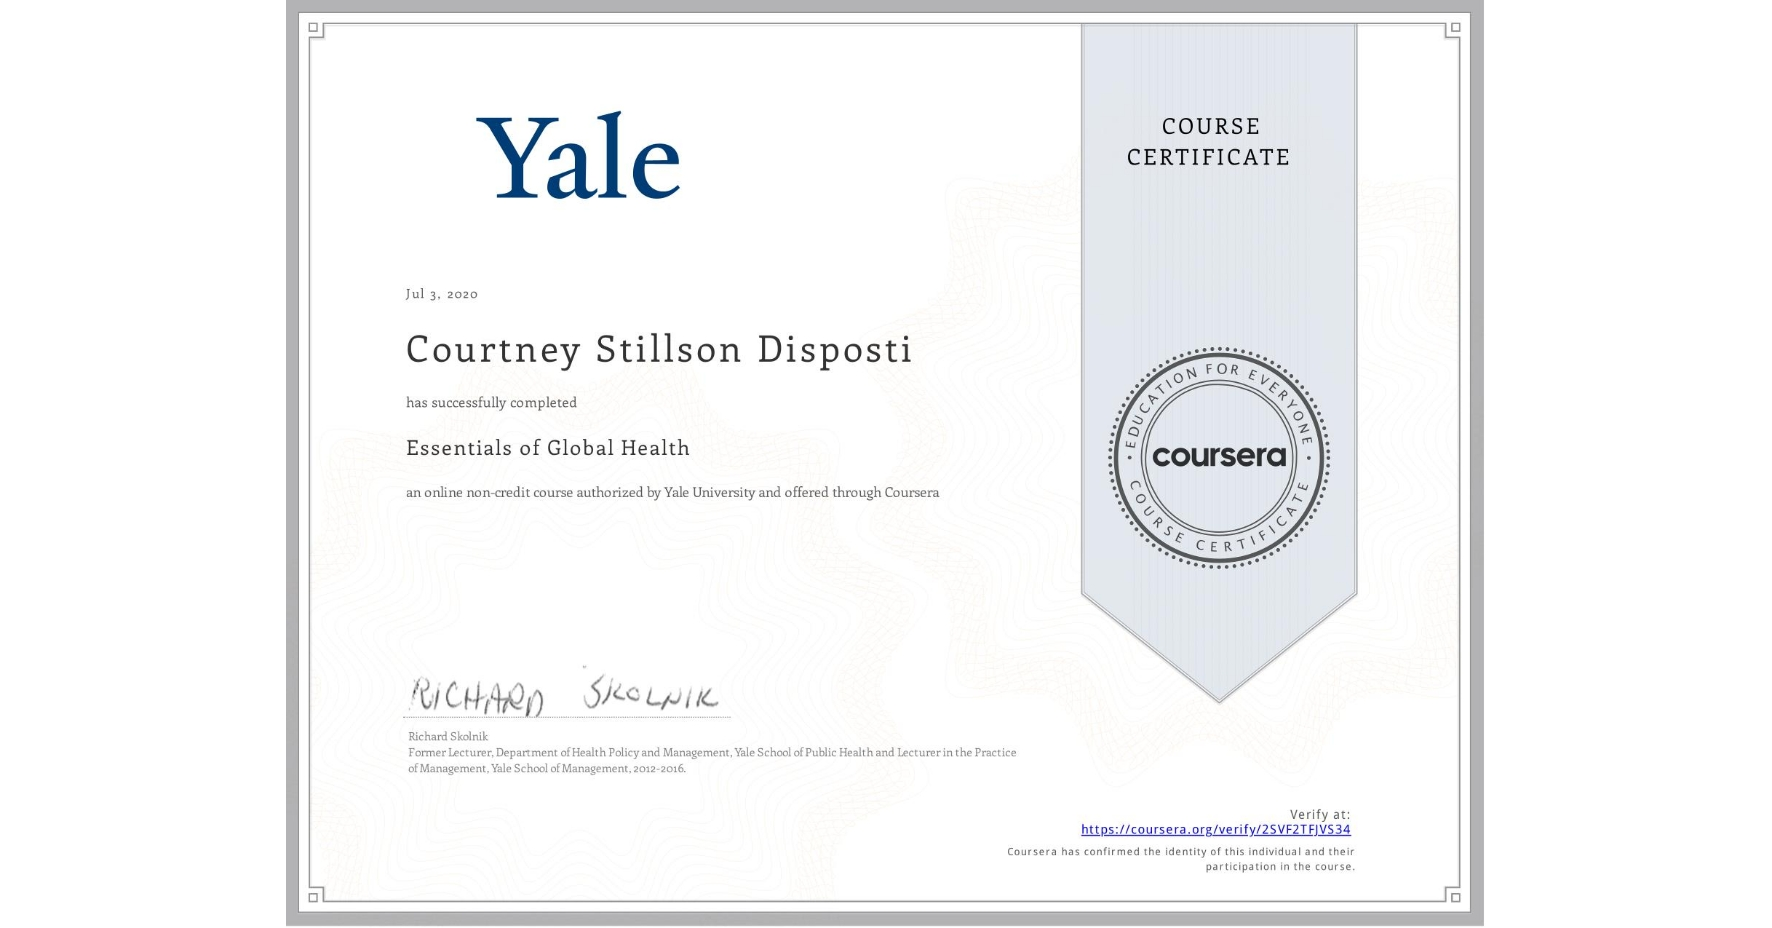 View certificate for Courtney Stillson Disposti, Essentials of Global Health, an online non-credit course authorized by Yale University and offered through Coursera